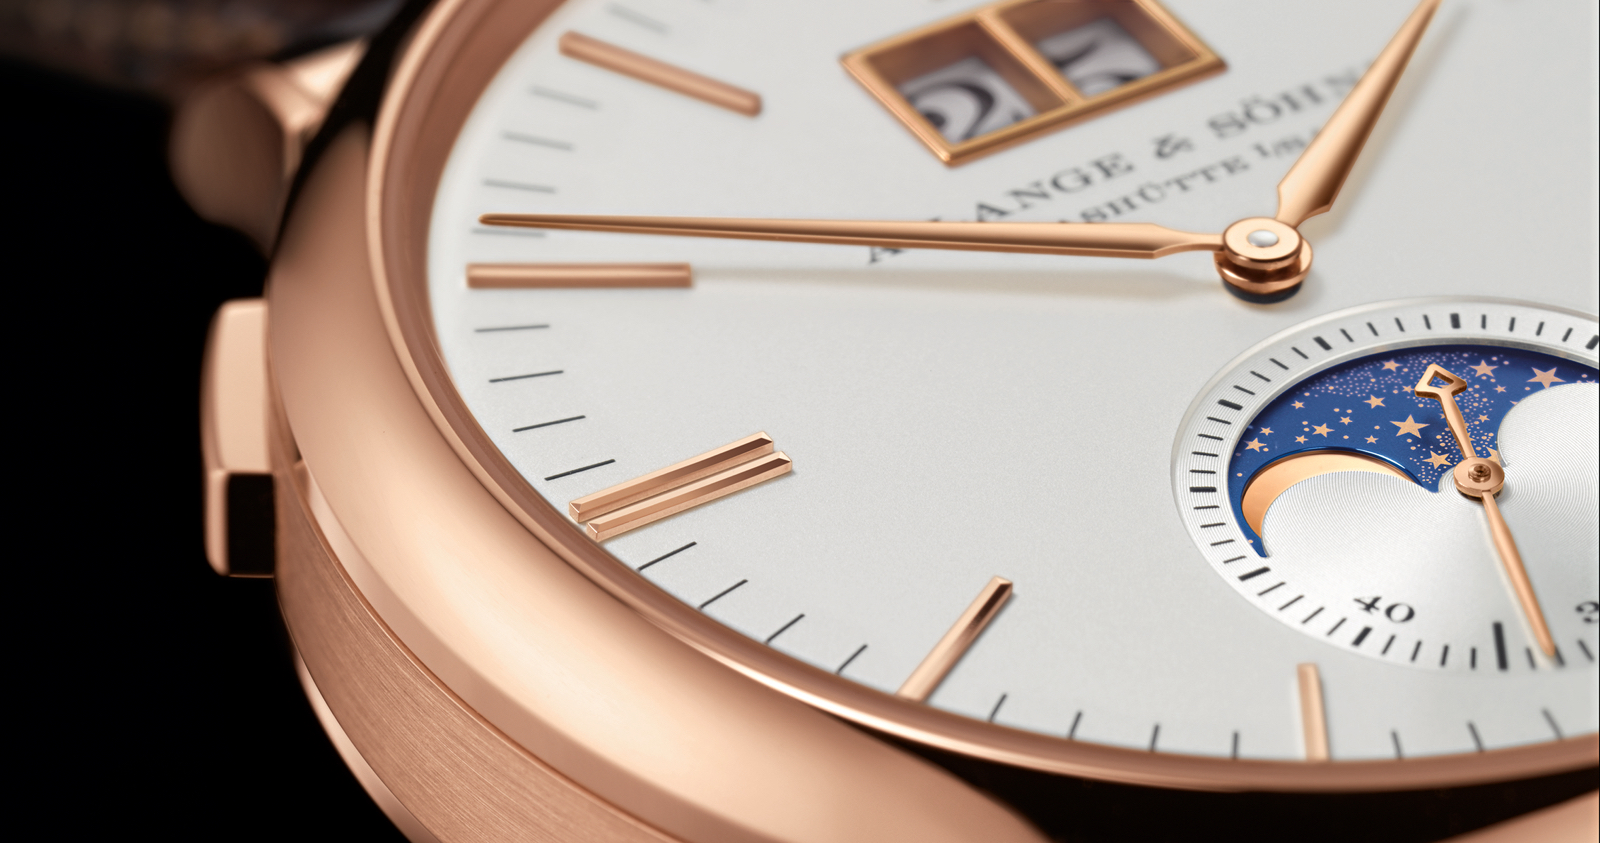 lange-saxonia-moon-phase-case-detail